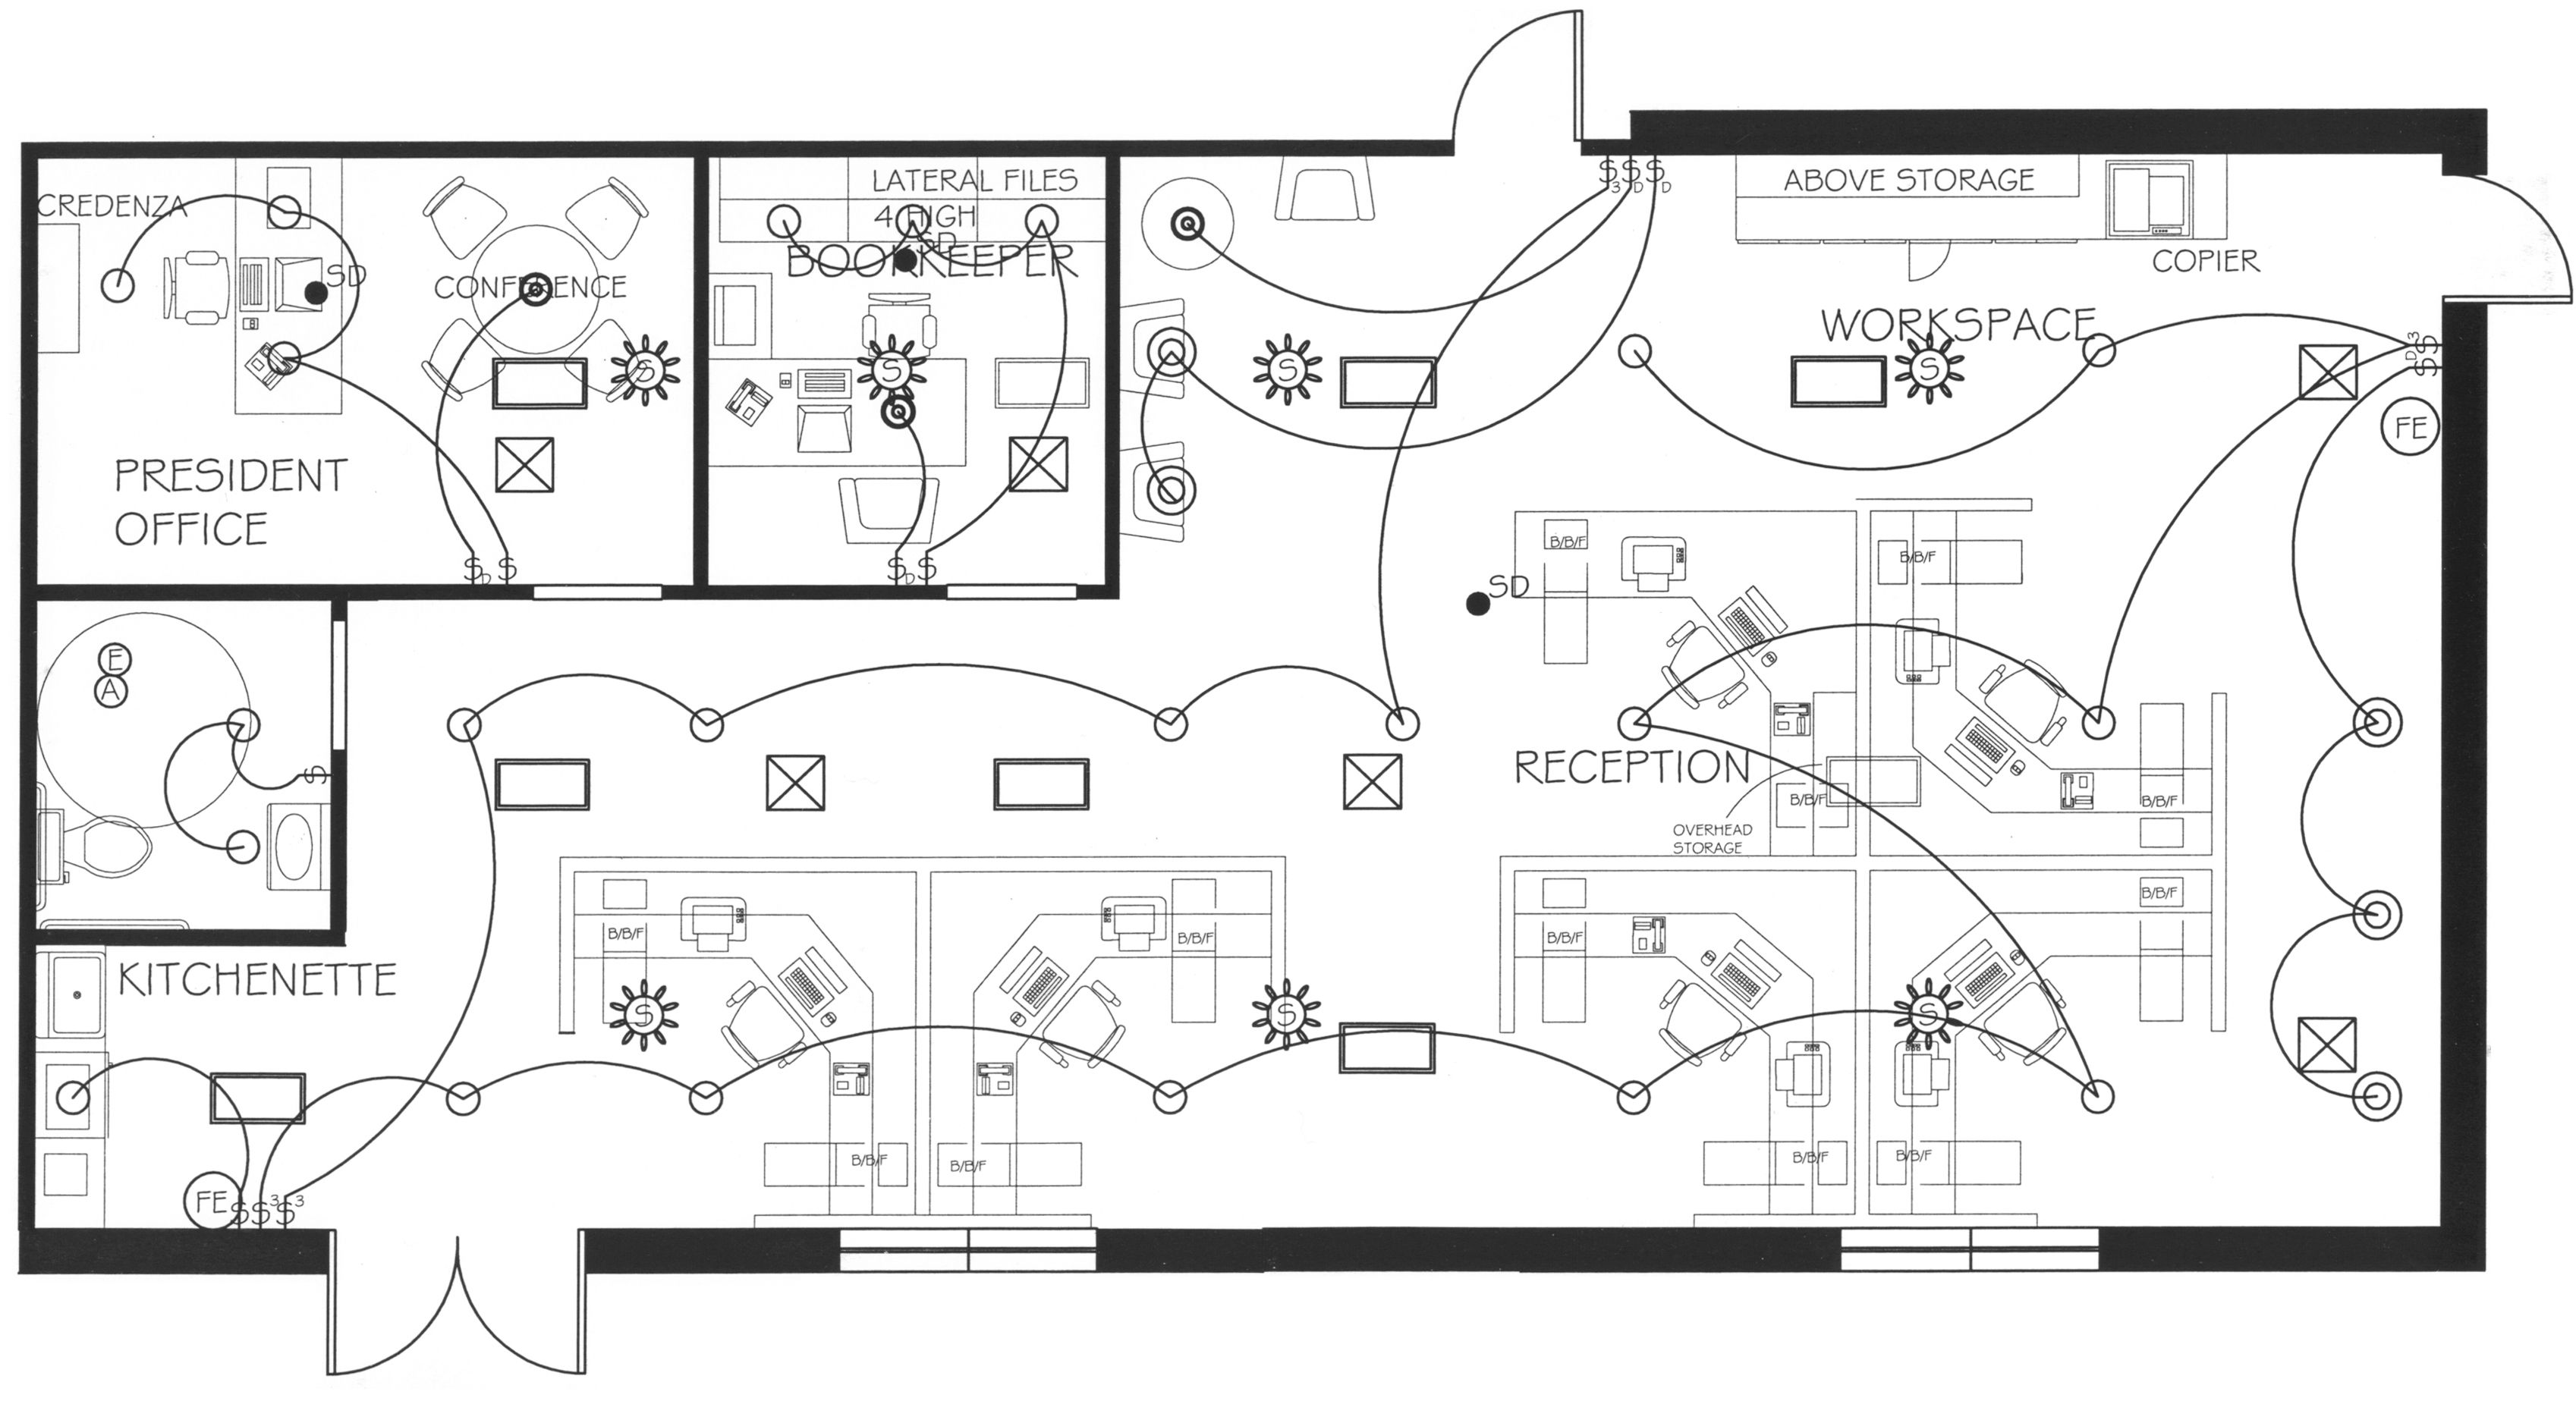 hight resolution of office layout floor plan lauren dugger s portfolio